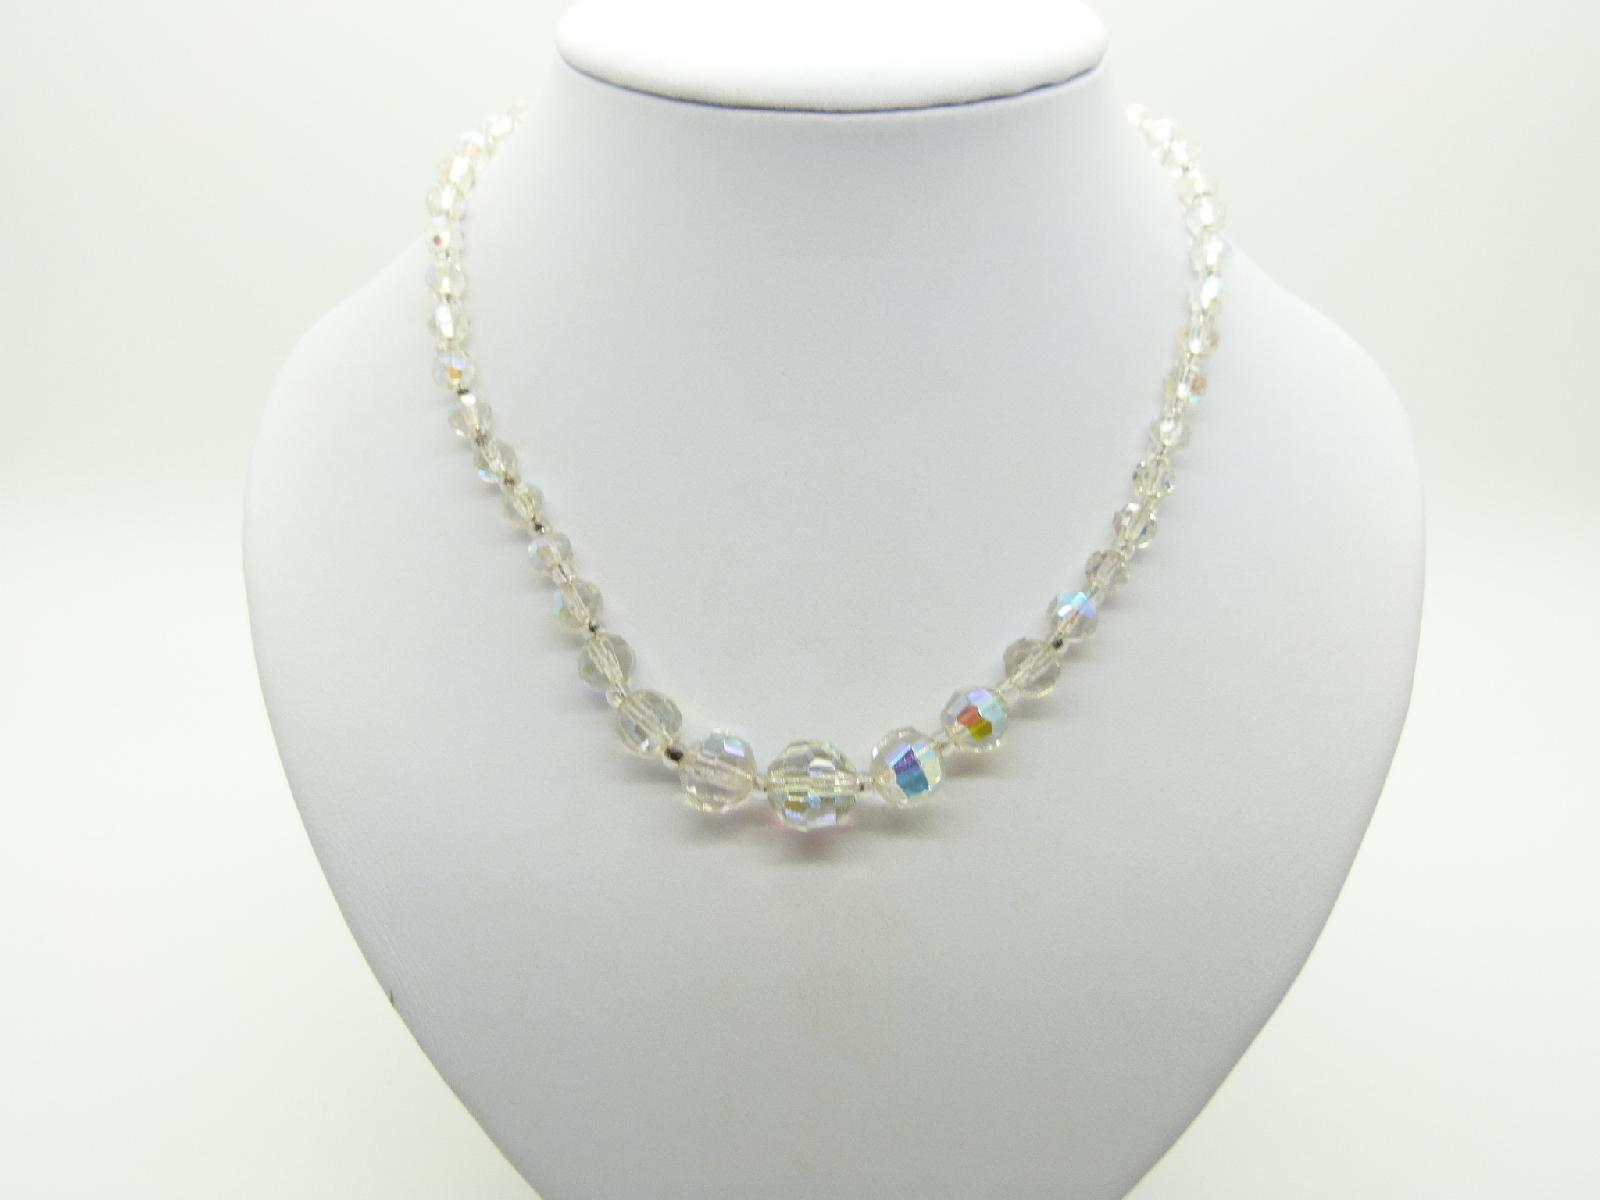 £13.00 - Vintage 50s Pretty AB Crystal Glass Bead Necklace 48cms Long